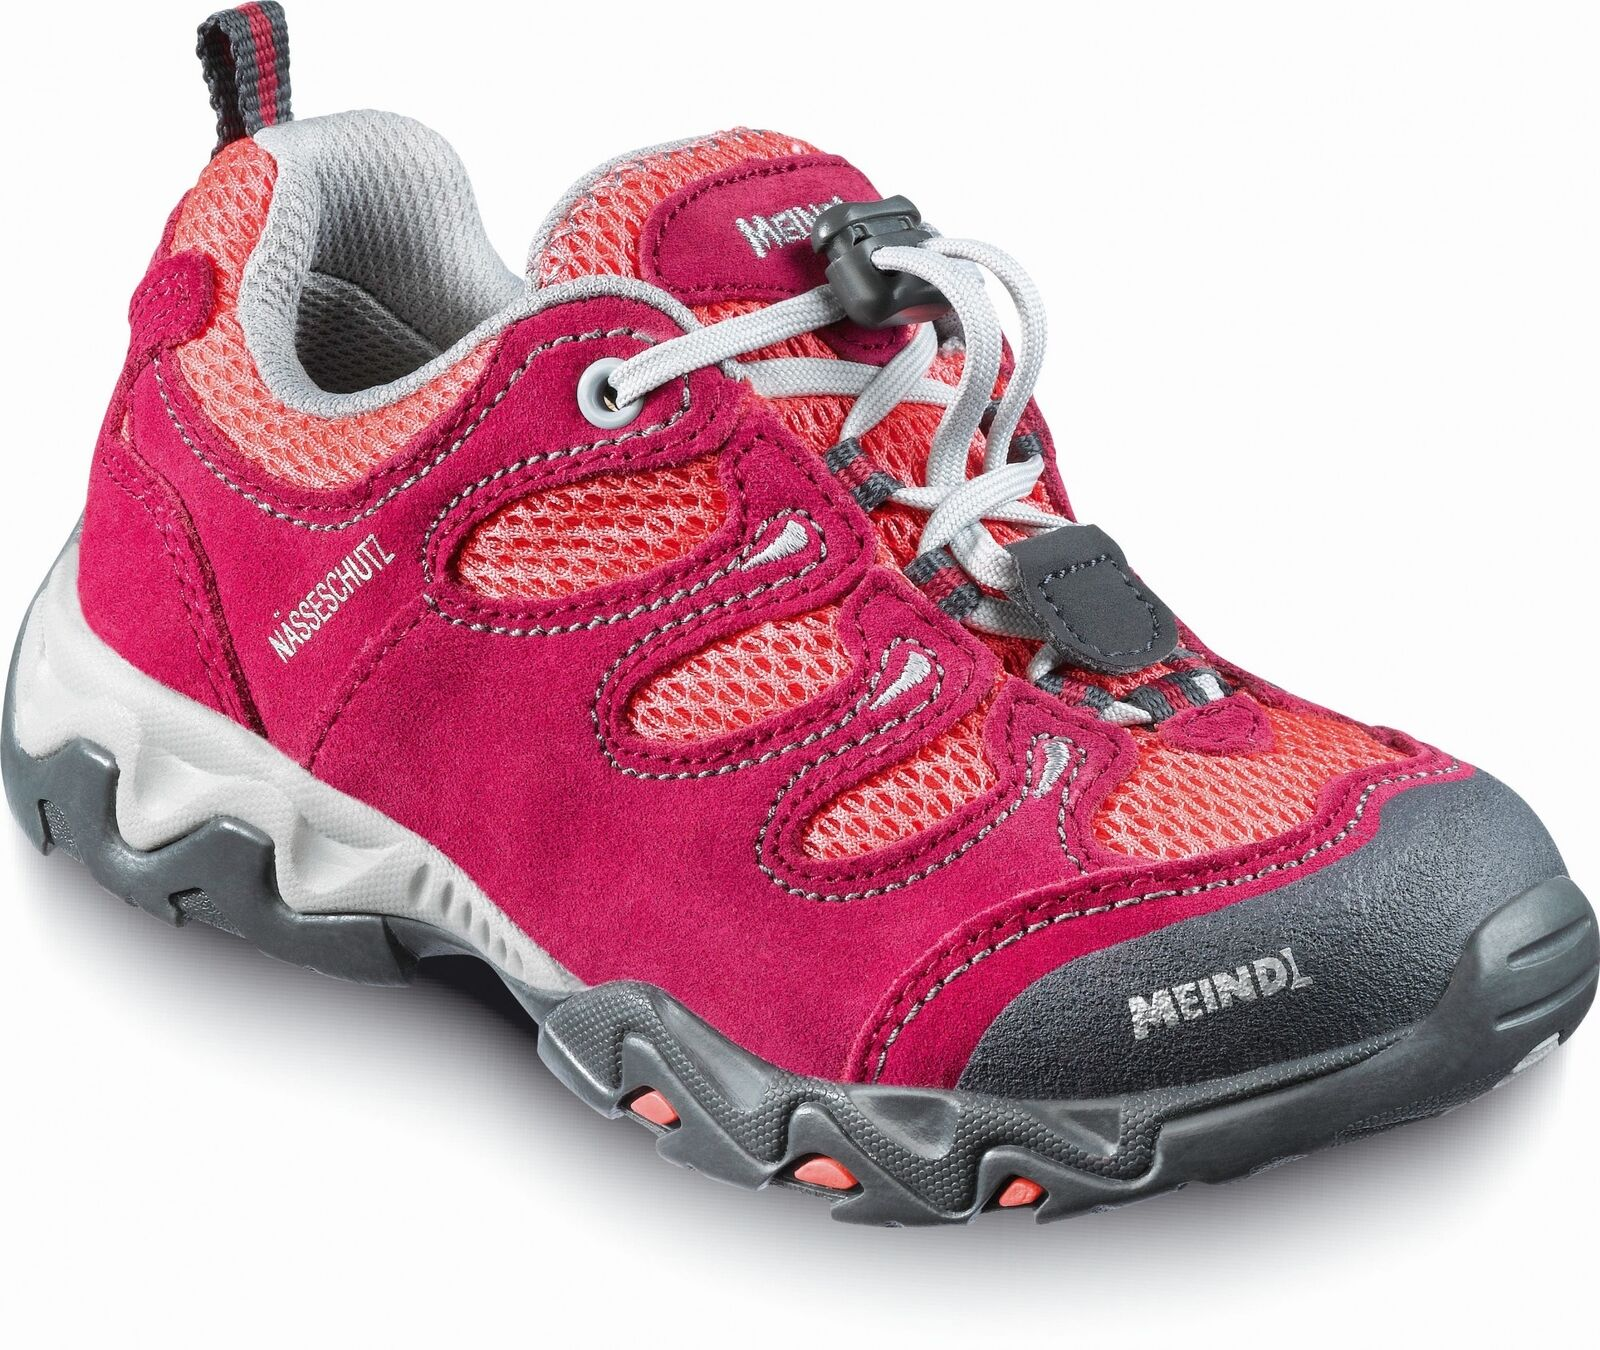 Meindl Tarango Junior Walking Boots Kids shoes Casual shoes